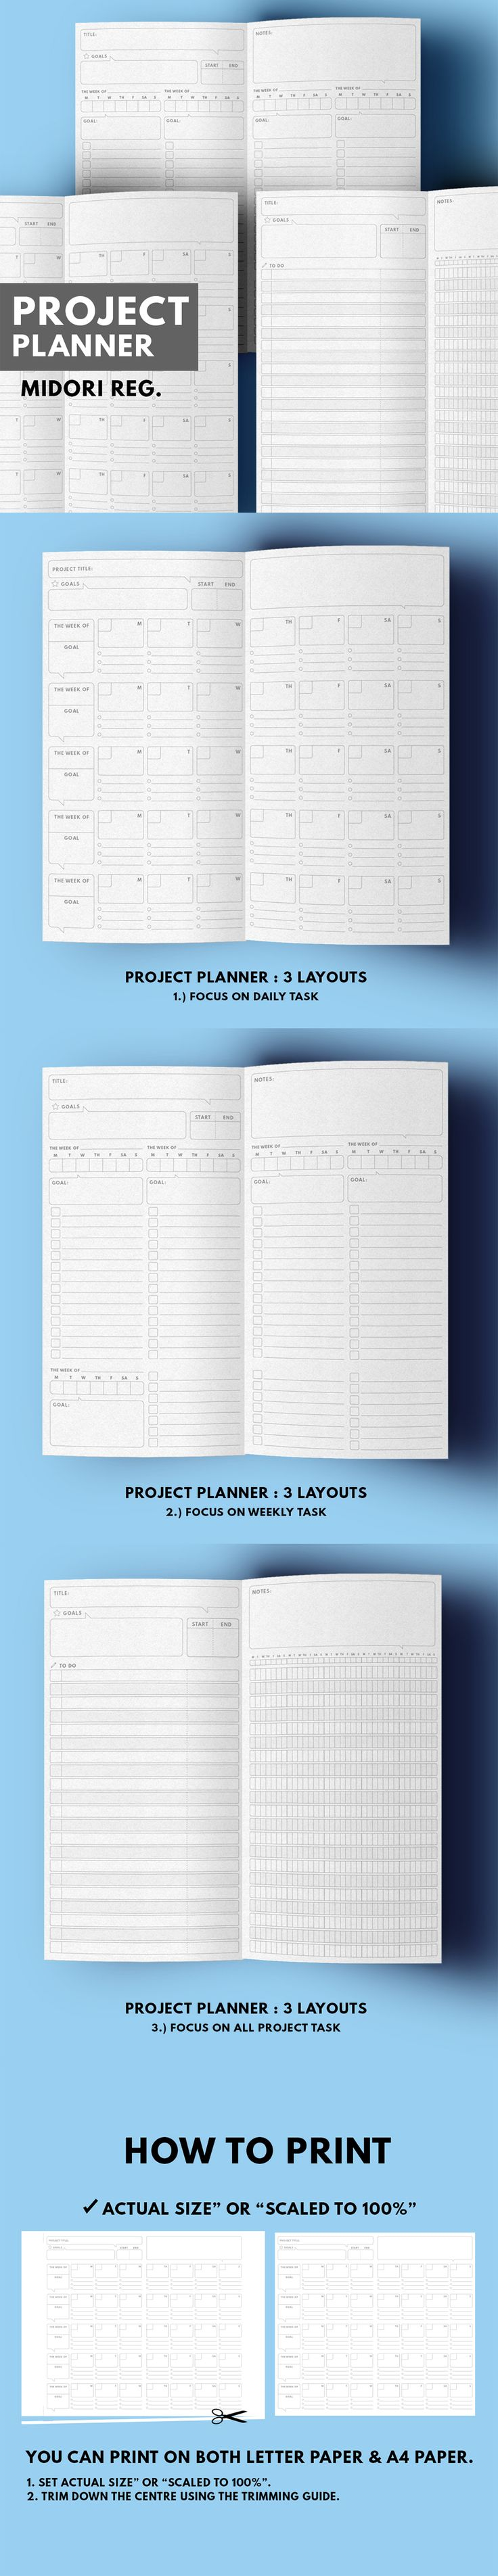 Project / Goal Planner ▹ for Midori Traveller's notebook Regular size  Printable   Project / Goal Planner in minimal layout This planner design for tracking all task in your project for 5 weeks(1 month) in 2 pages, There're 3 different layouts that you can choose which is suit for you such as project planner focus on daily task, weekly task or whole project.  ▹ Title ▹ Goal ▹ Start/End date ▹ Weekly Planner/Tracker ▹ To do list ▹ Notes